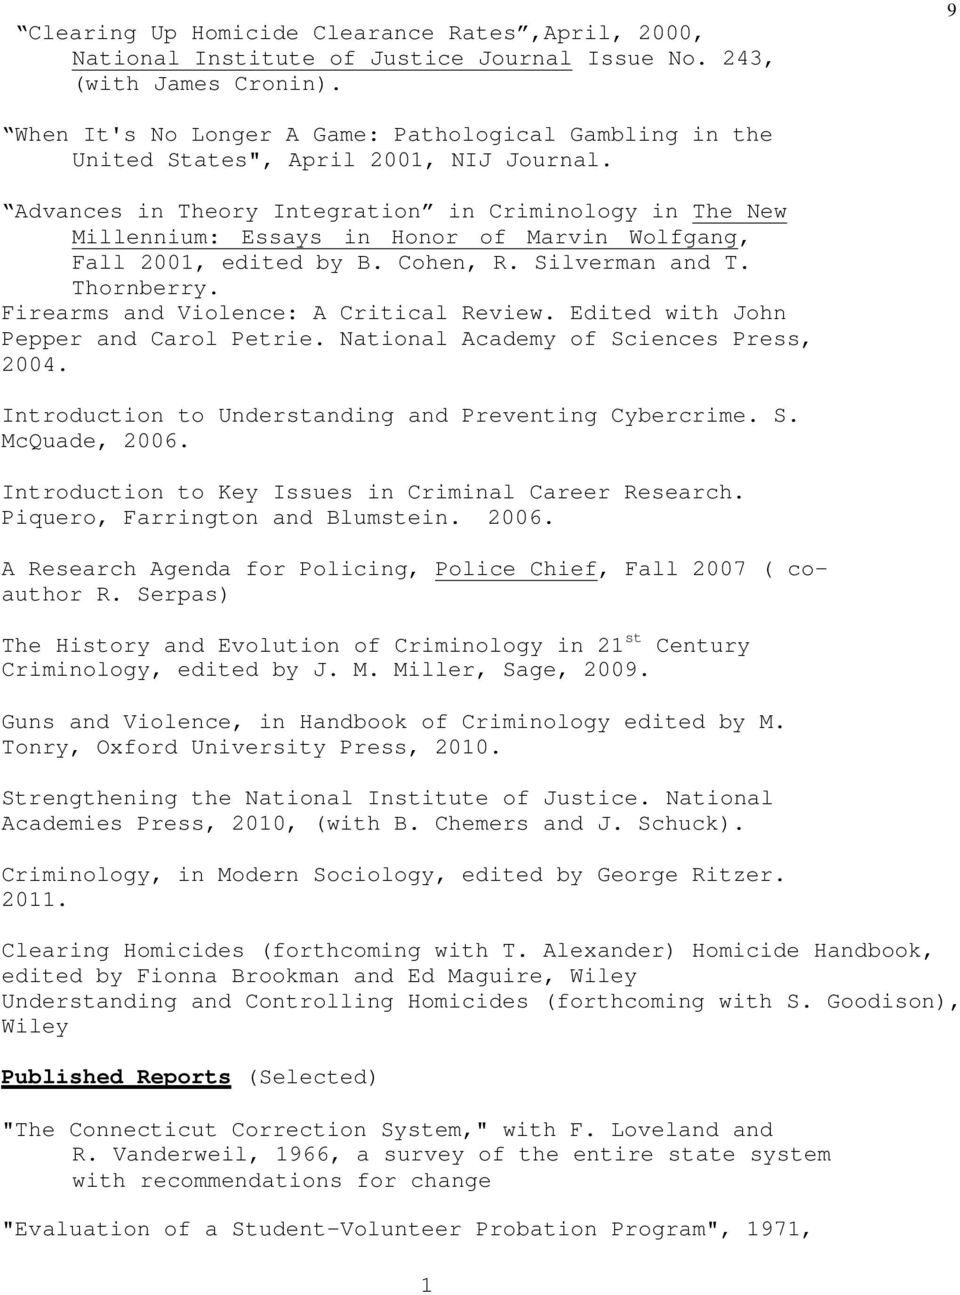 Advances in Theory Integration in Criminology in The New Millennium: Essays in Honor of Marvin Wolfgang, Fall 2001, edited by B. Cohen, R. Silverman and T. Thornberry.